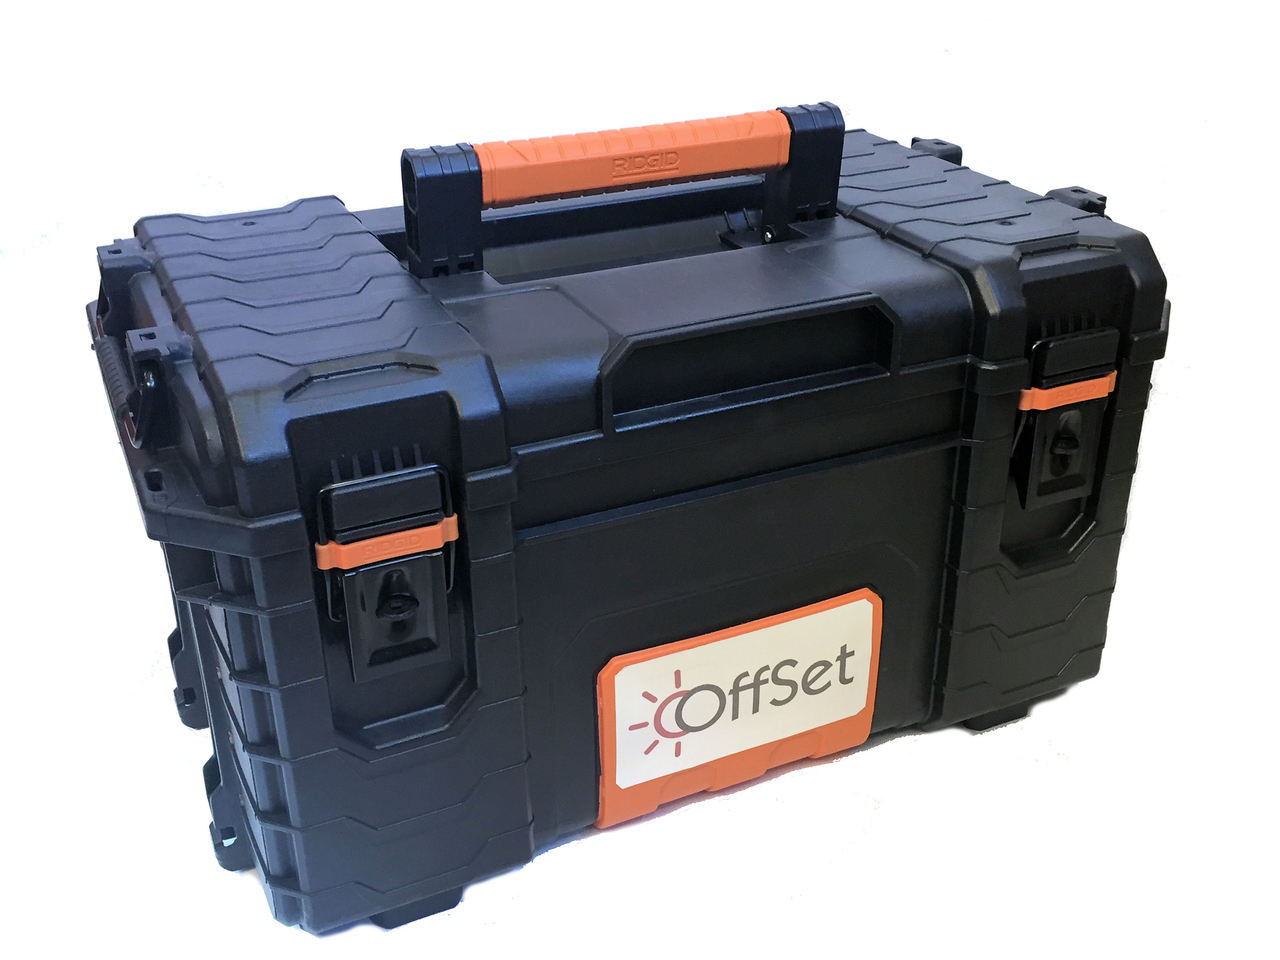 OffSet® Hard Carrying Case double bass drum pedal